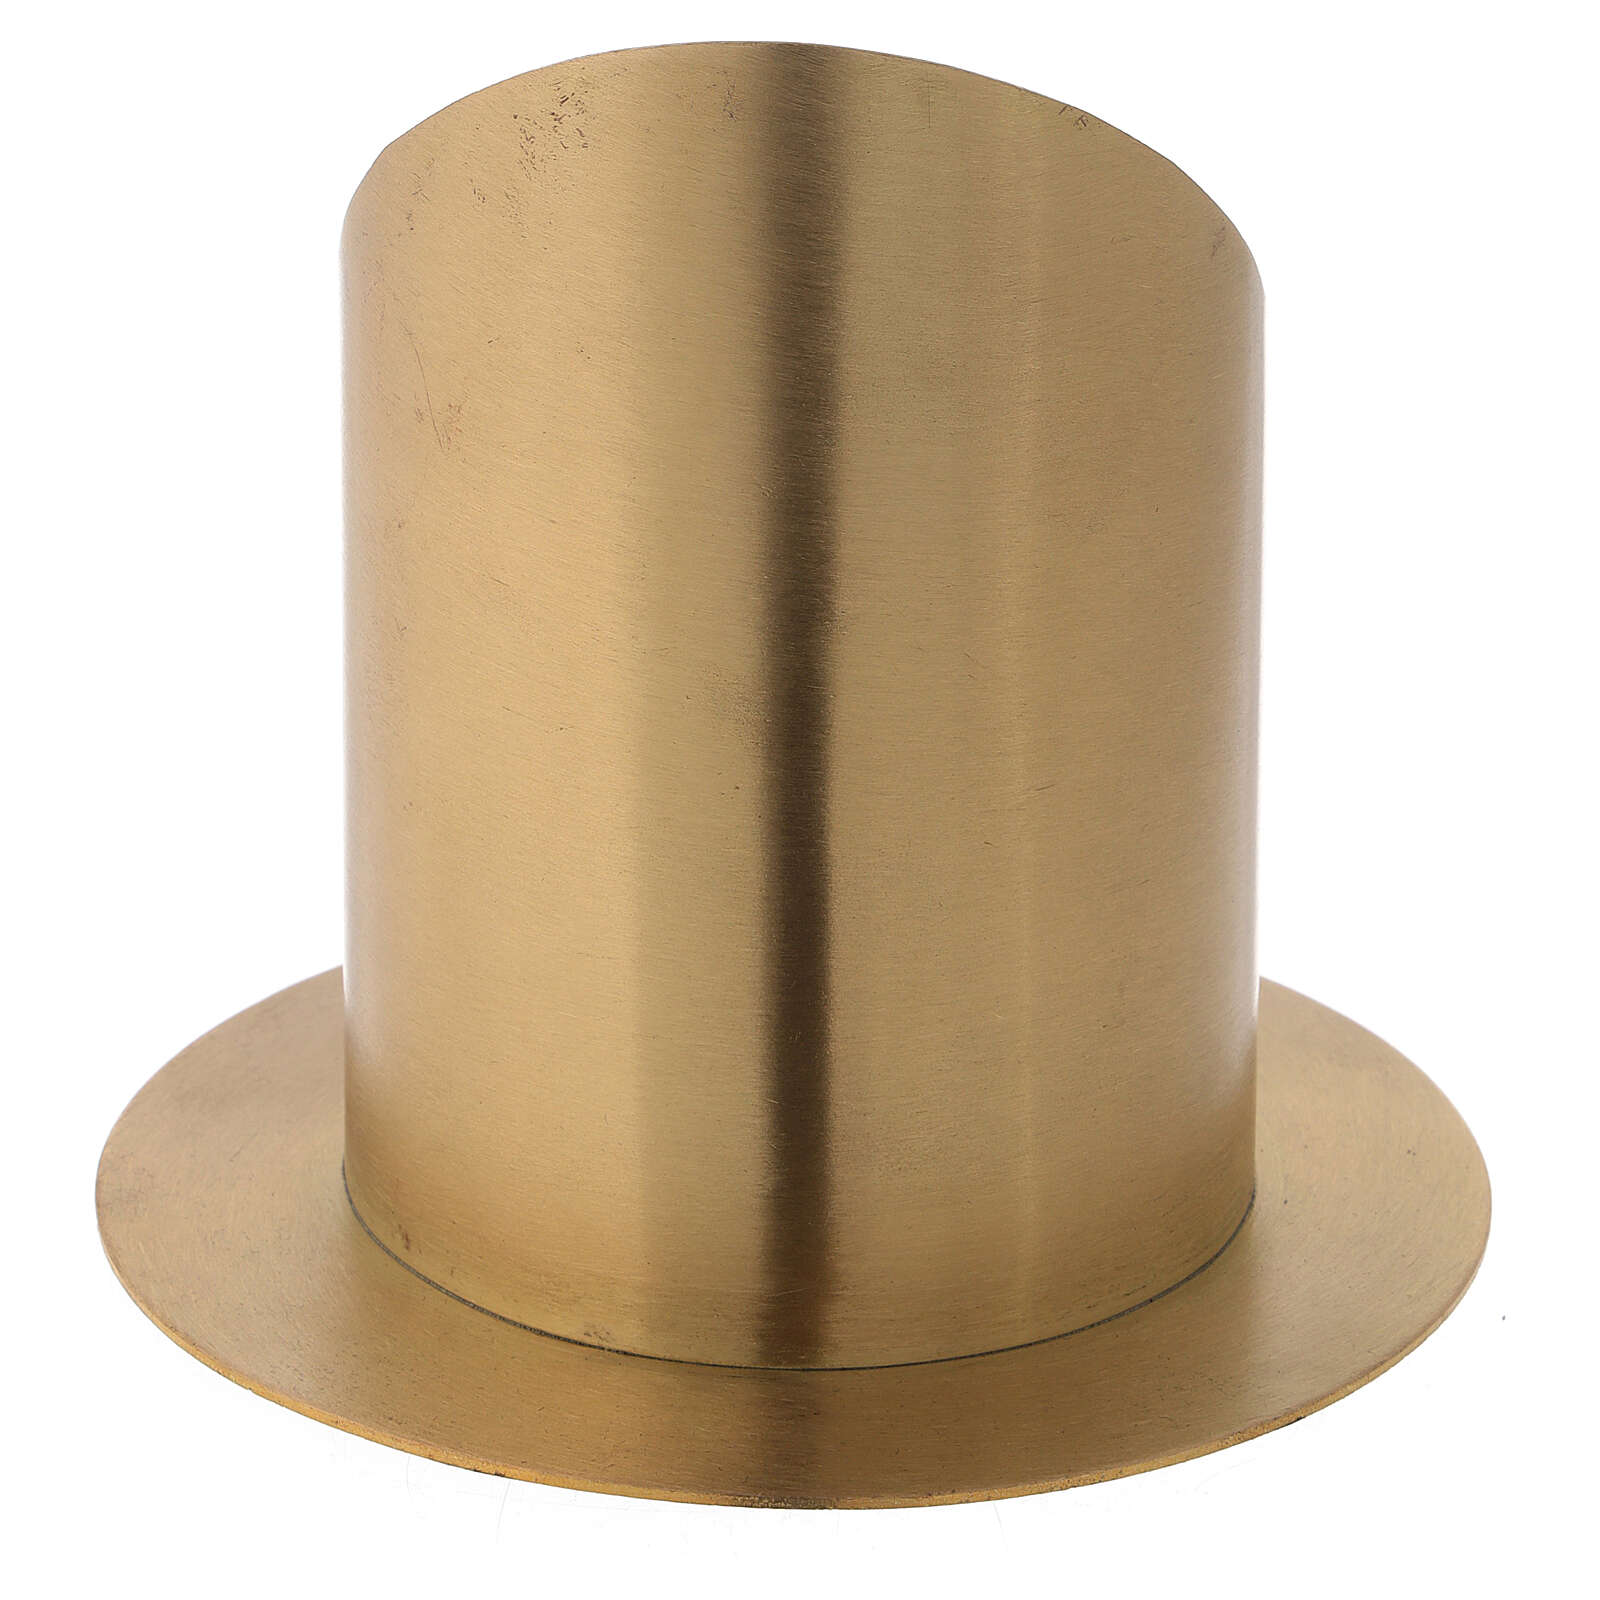 Nickel-plated brass candlestick with satin finish front opening d. 4 in 4